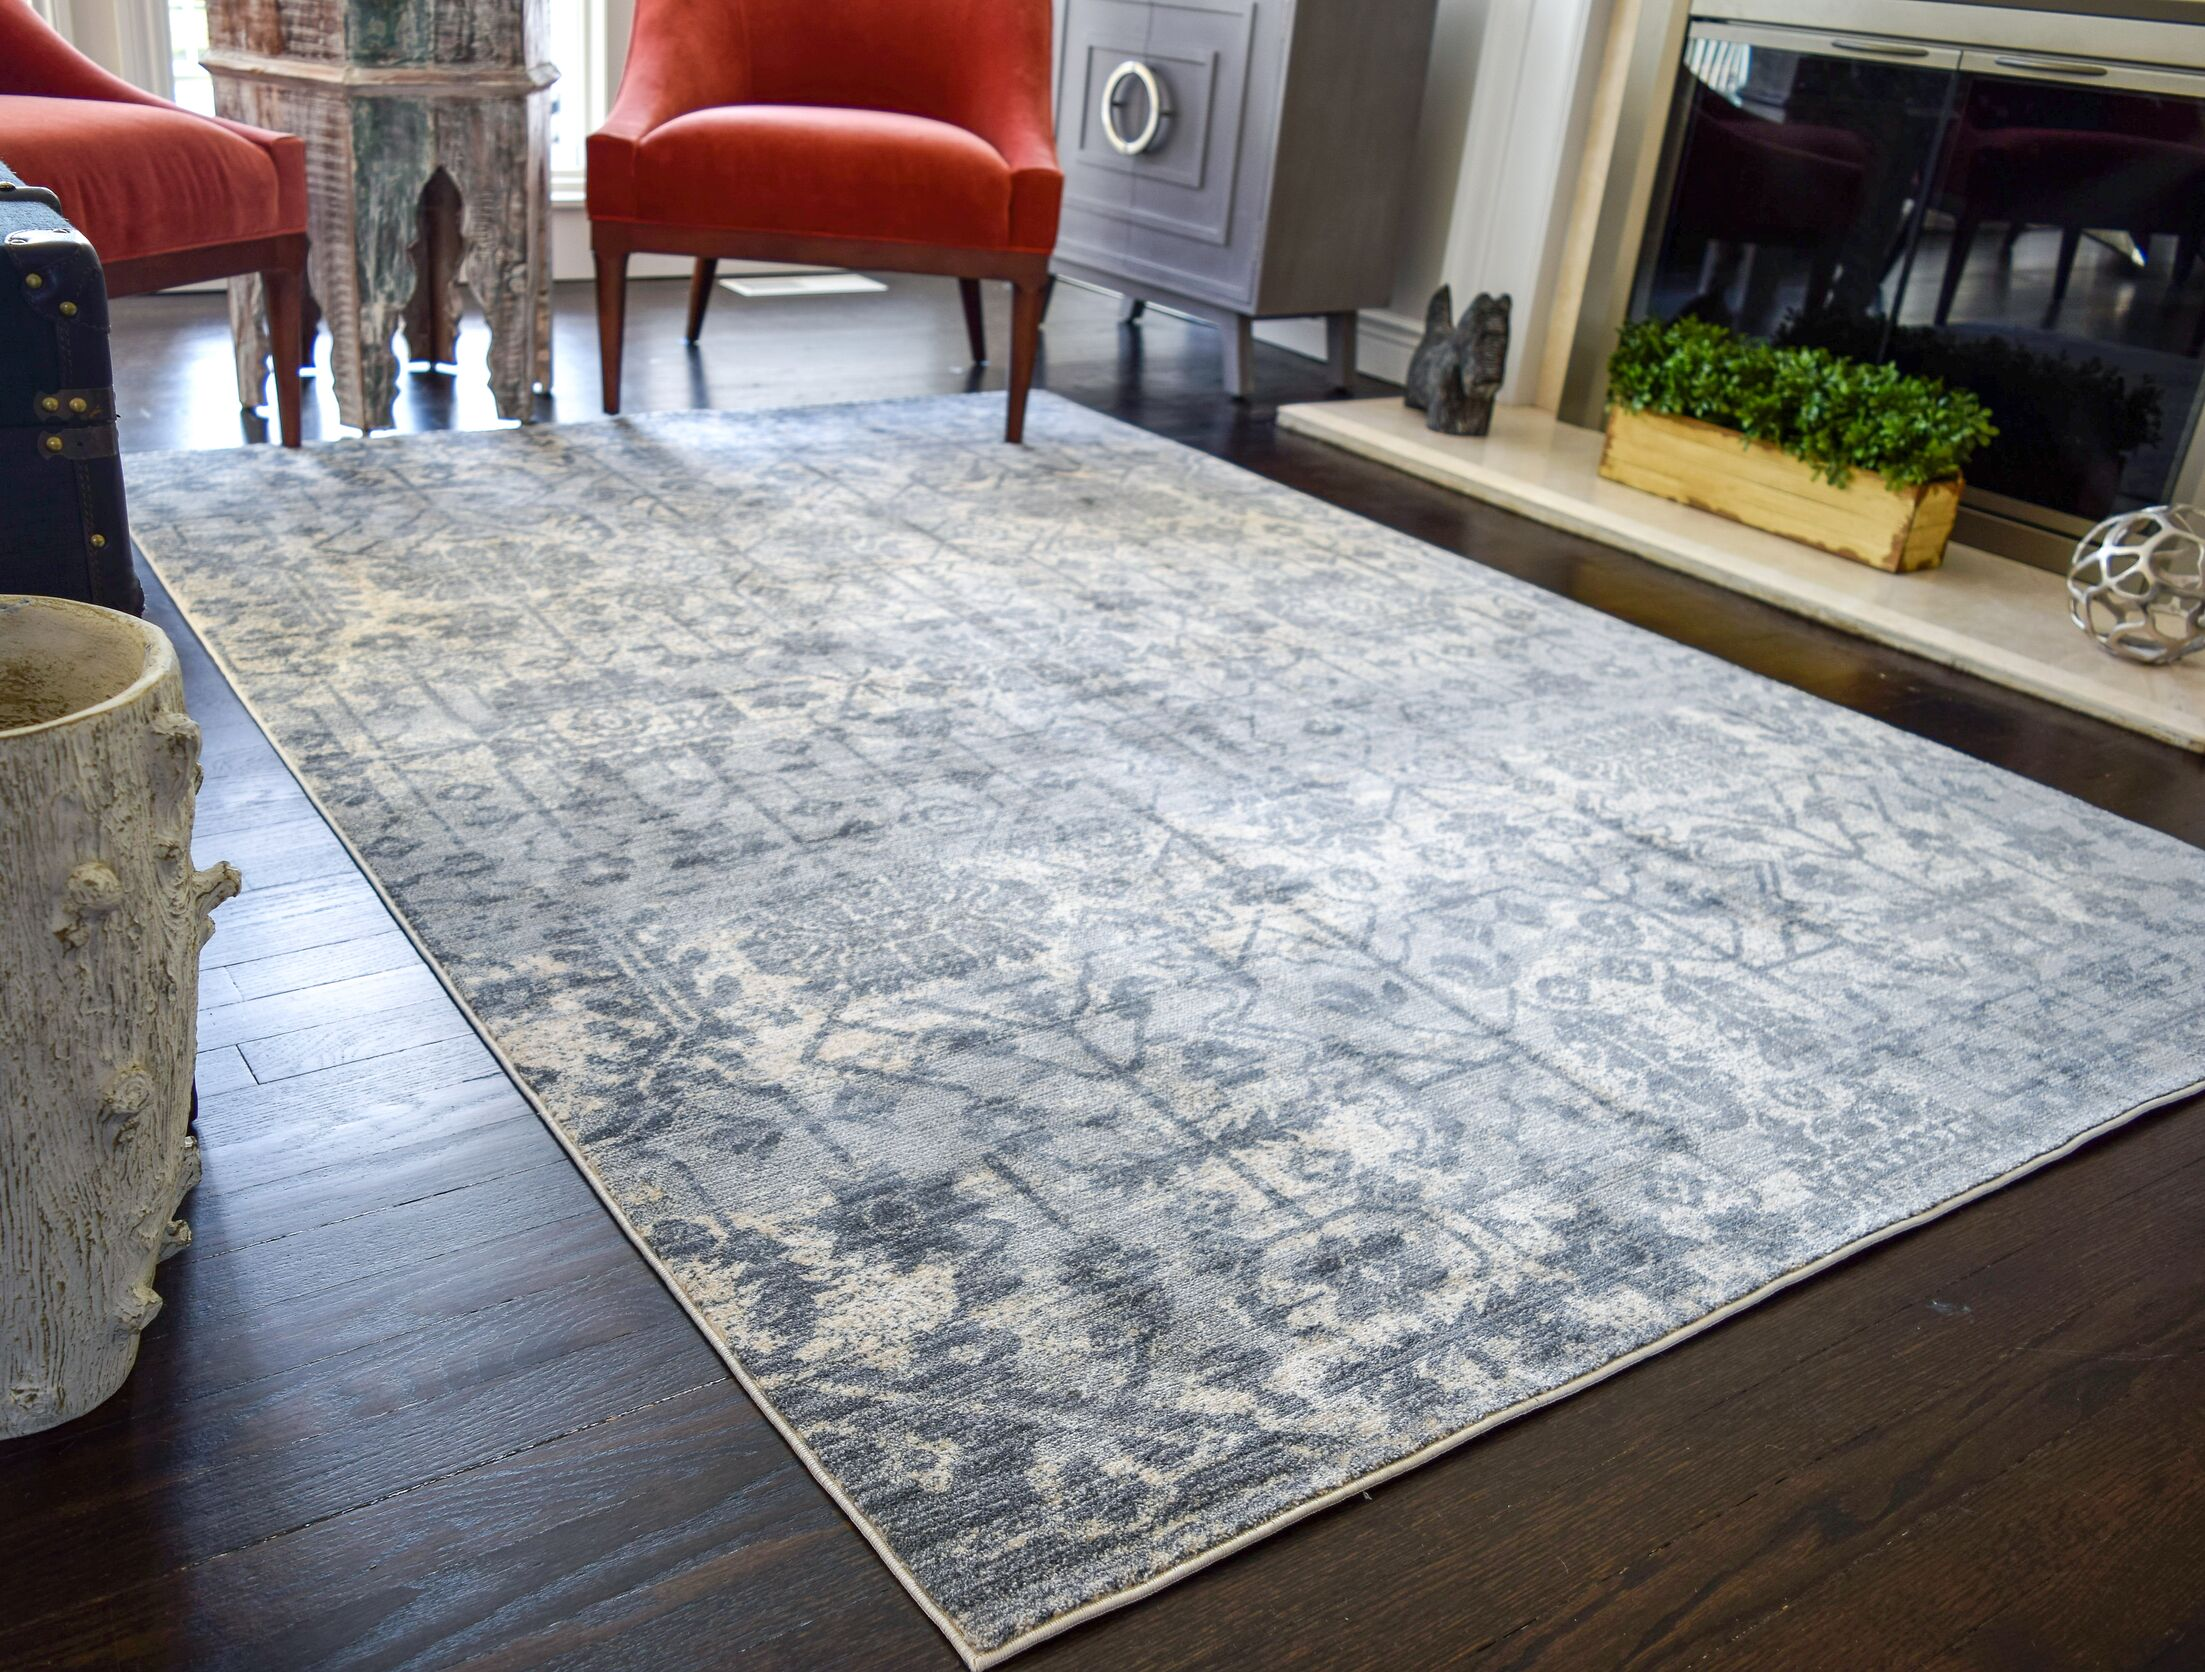 Park Vintage Transitional Ivory/Gray Area Rug Rug Size: Rectangle 2' x 6'5